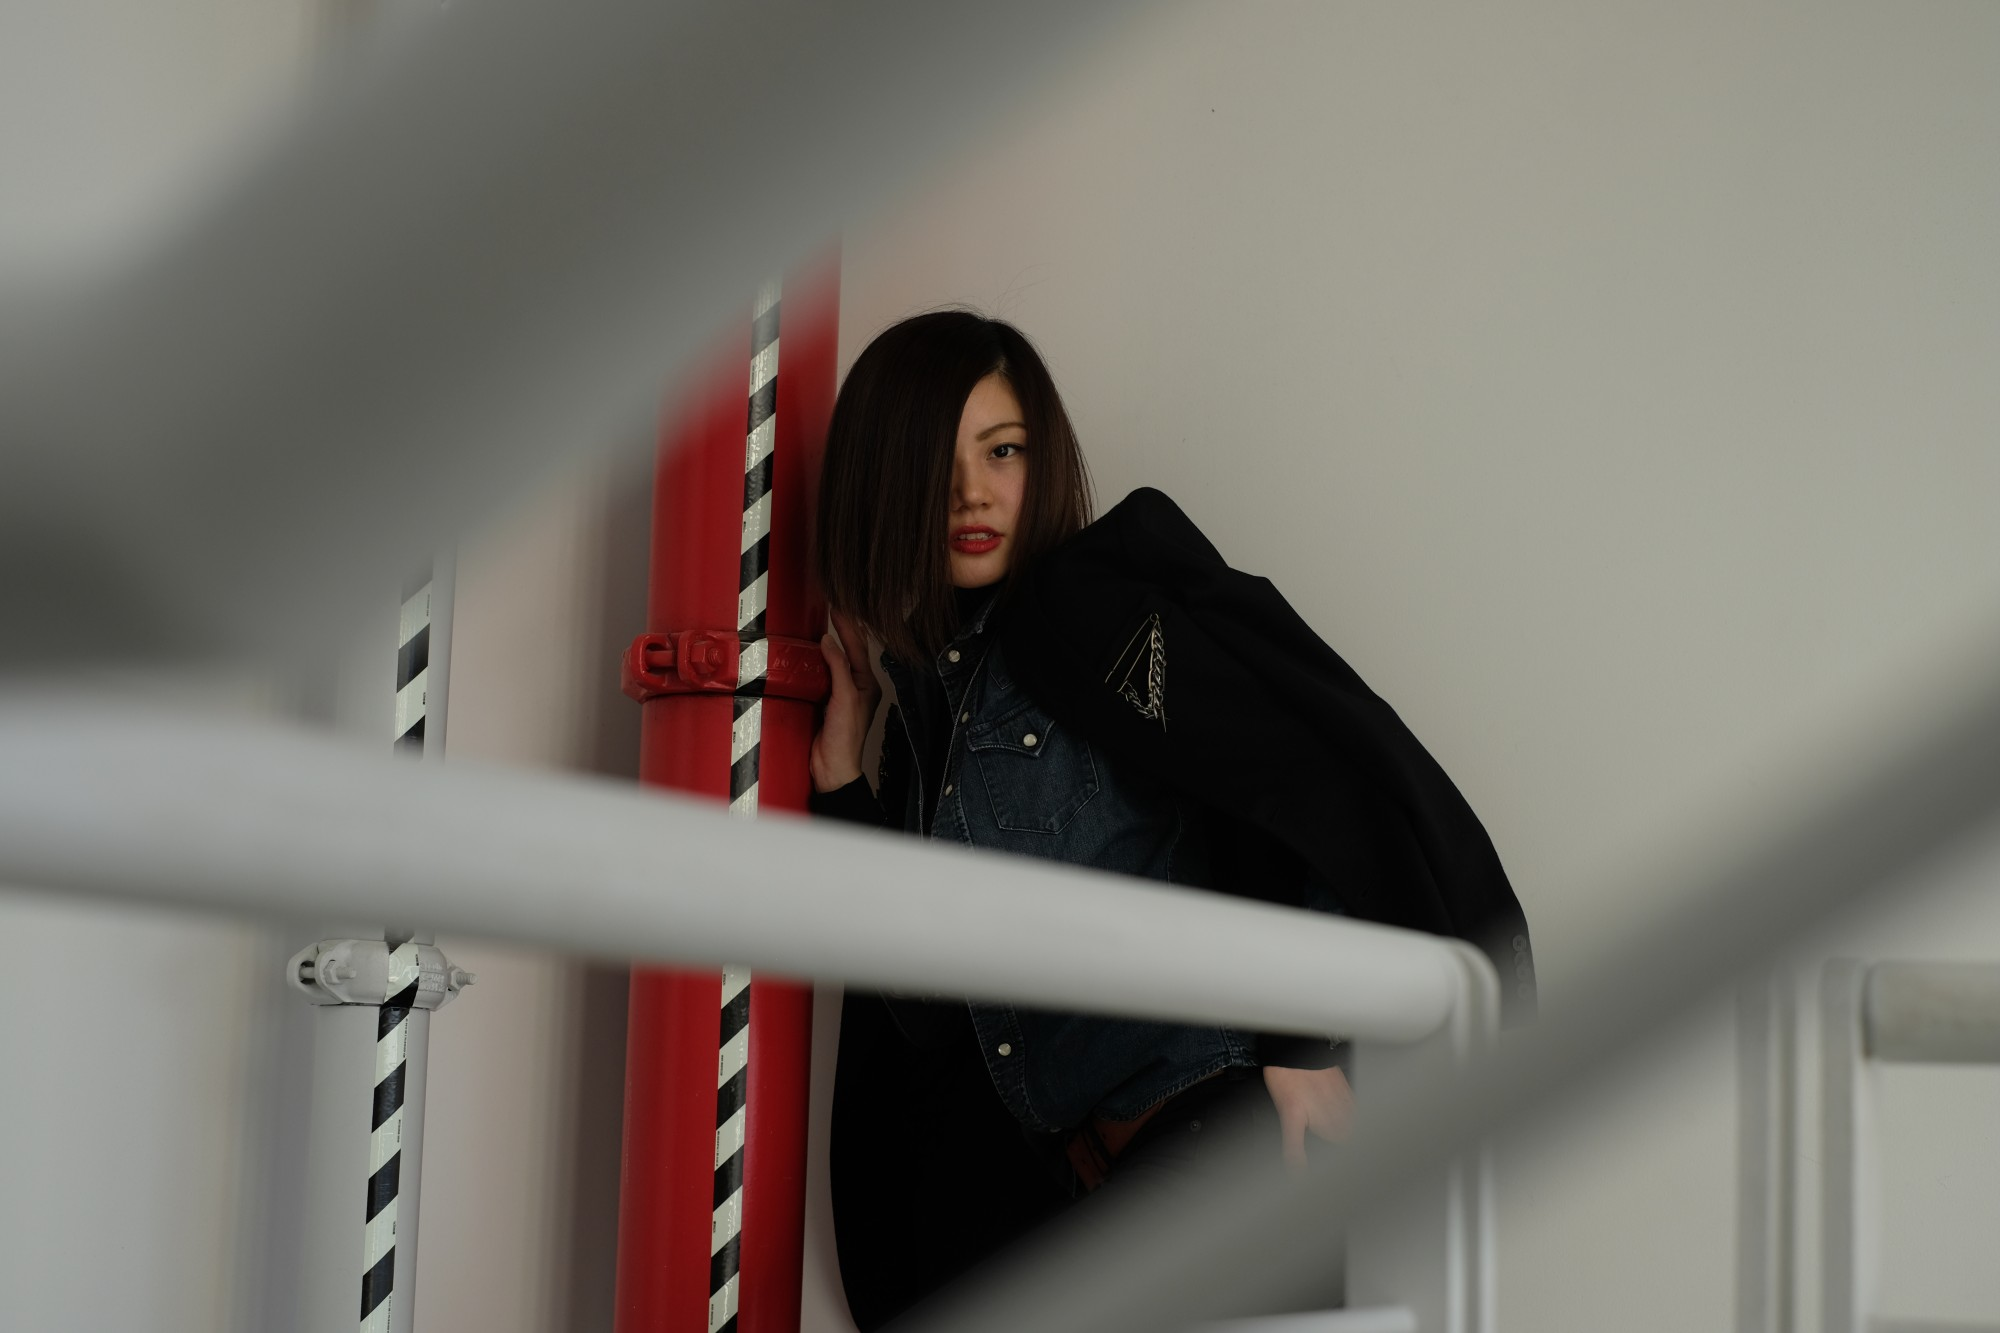 model by red pipe with blurry railings